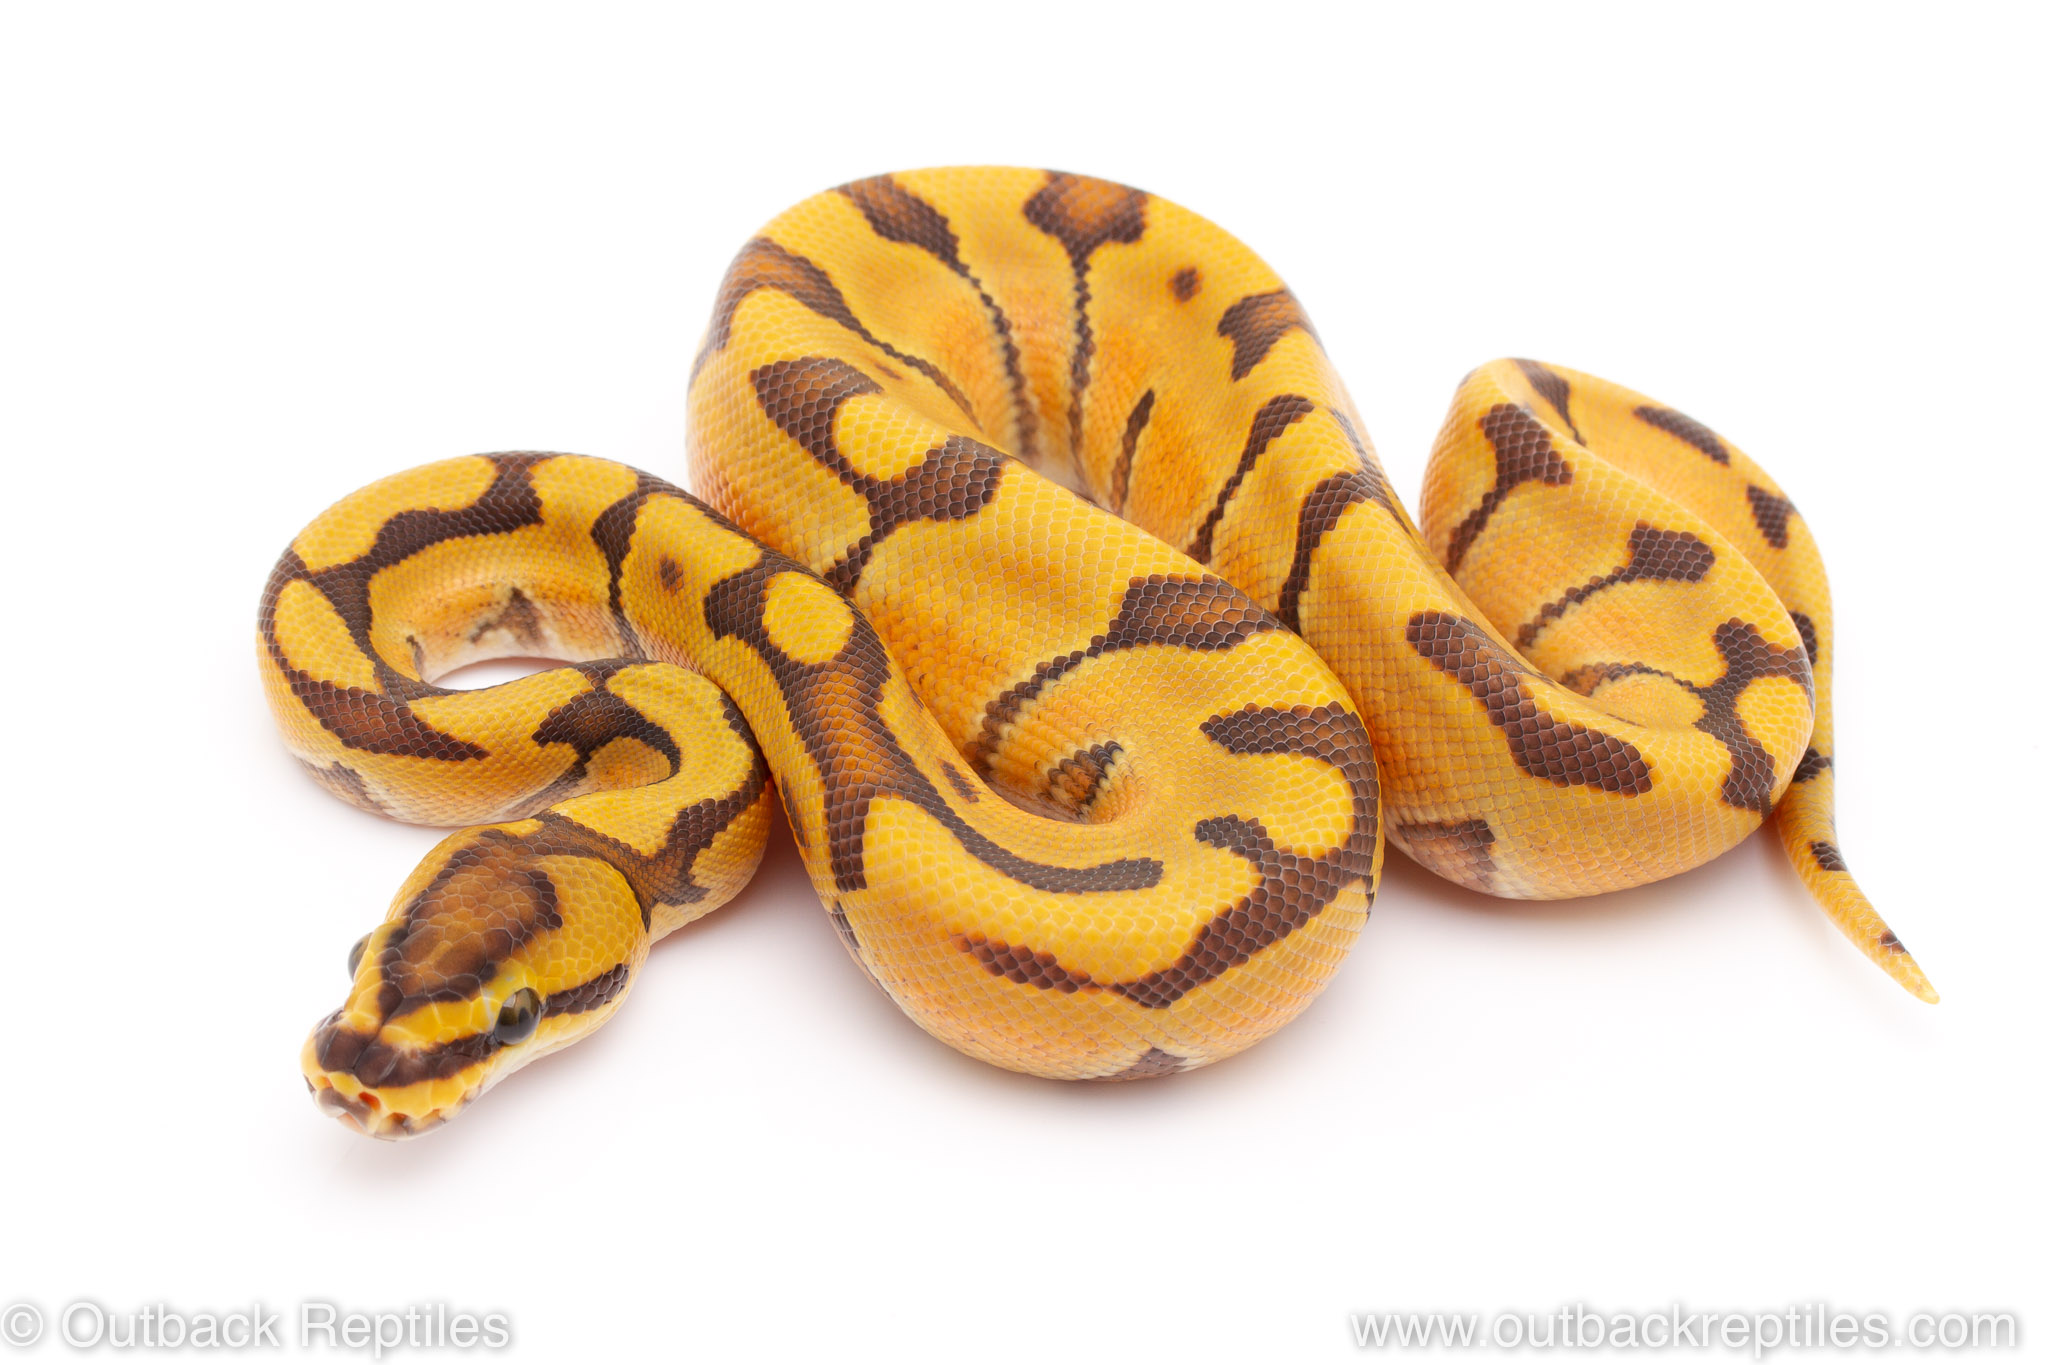 Ghost super enchi ball python for sale